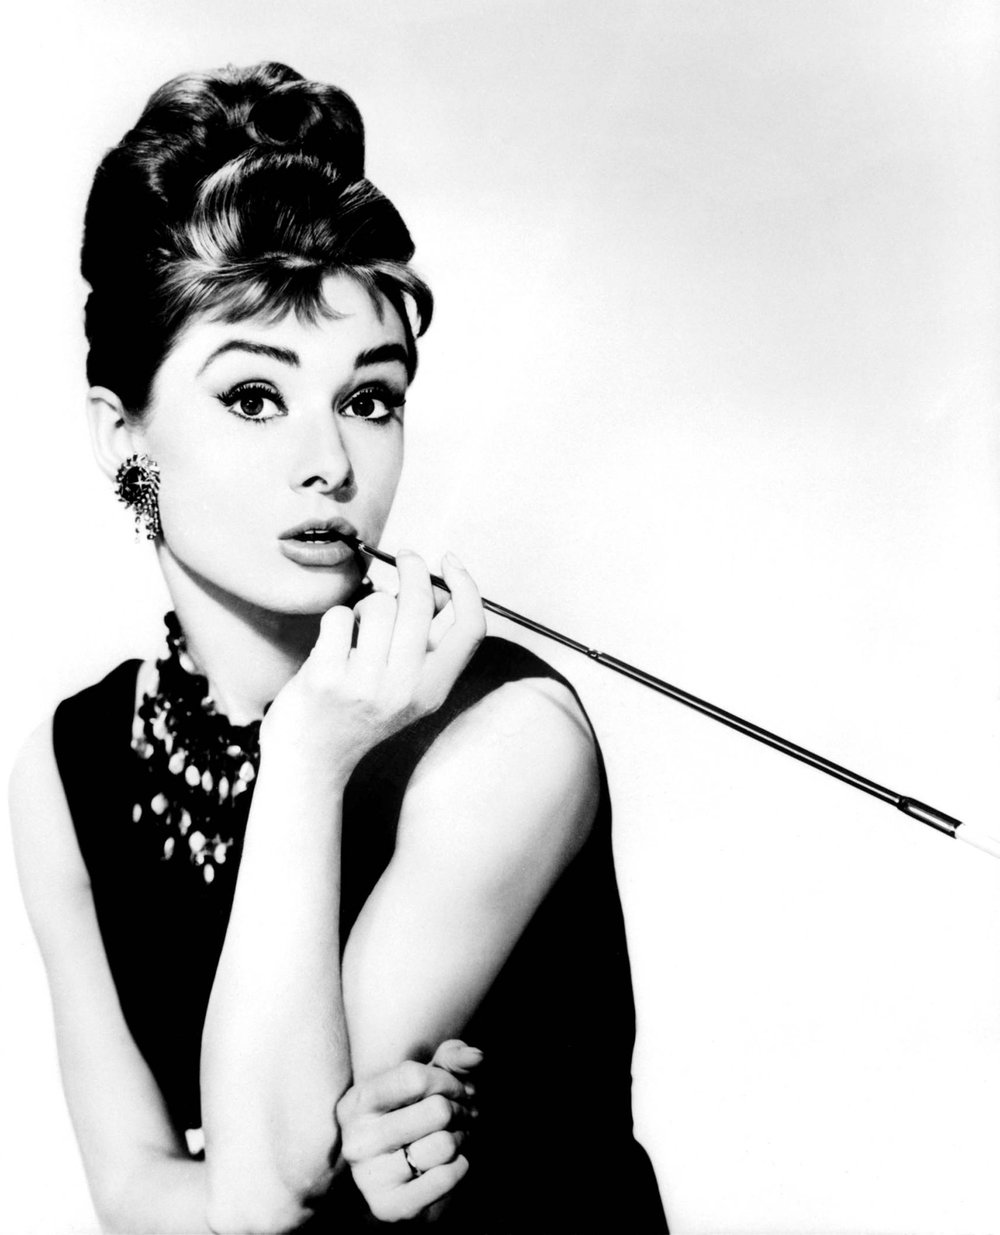 audrey-hepburn-1961-breakfast-tiffanys-holly-golightly-dvdbash26.jpg